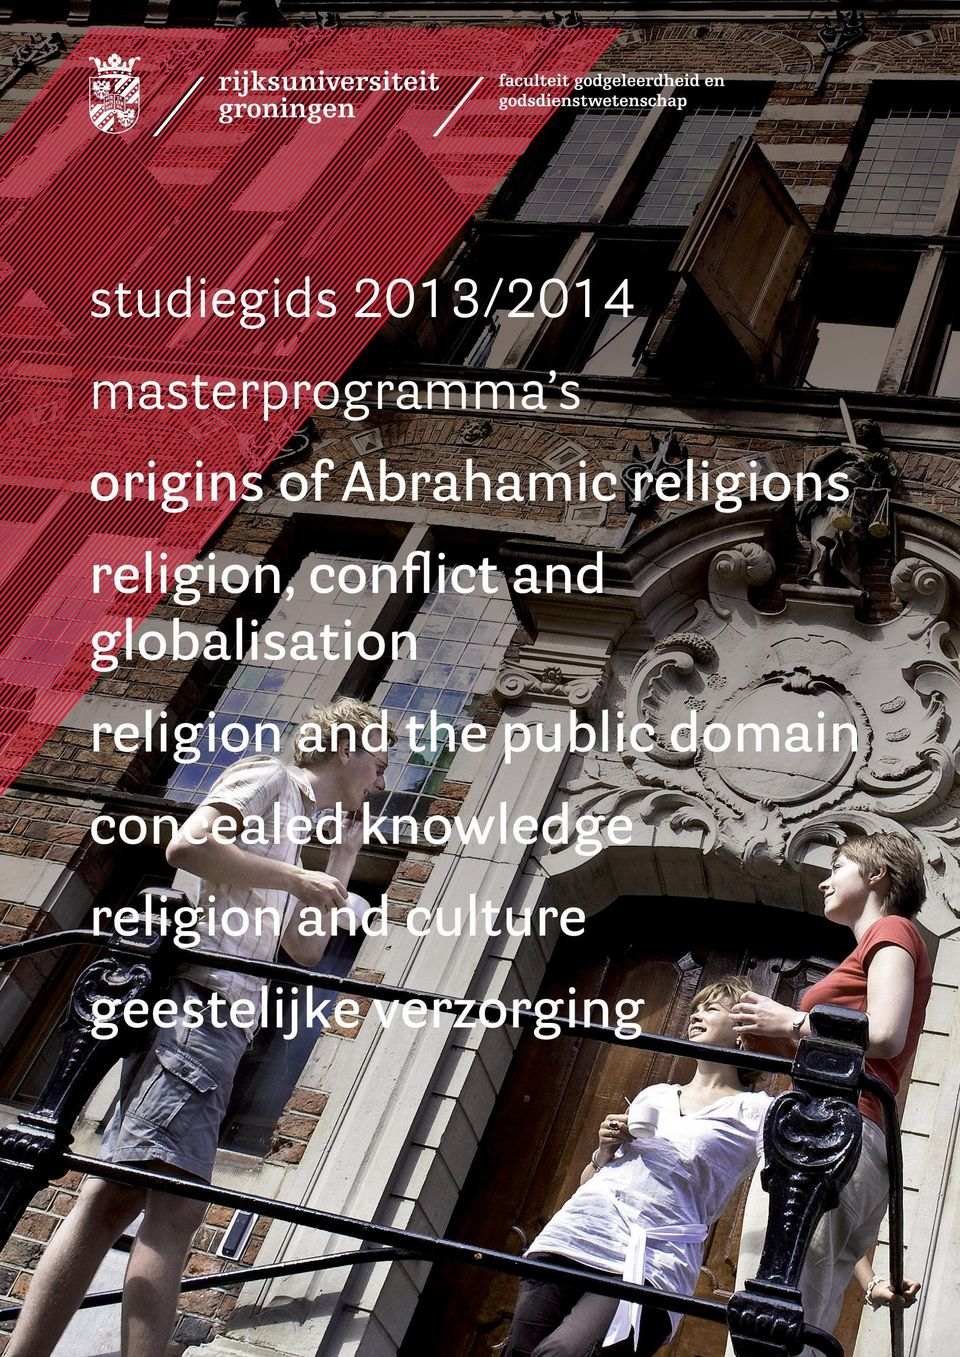 globalisation religion and the public domain